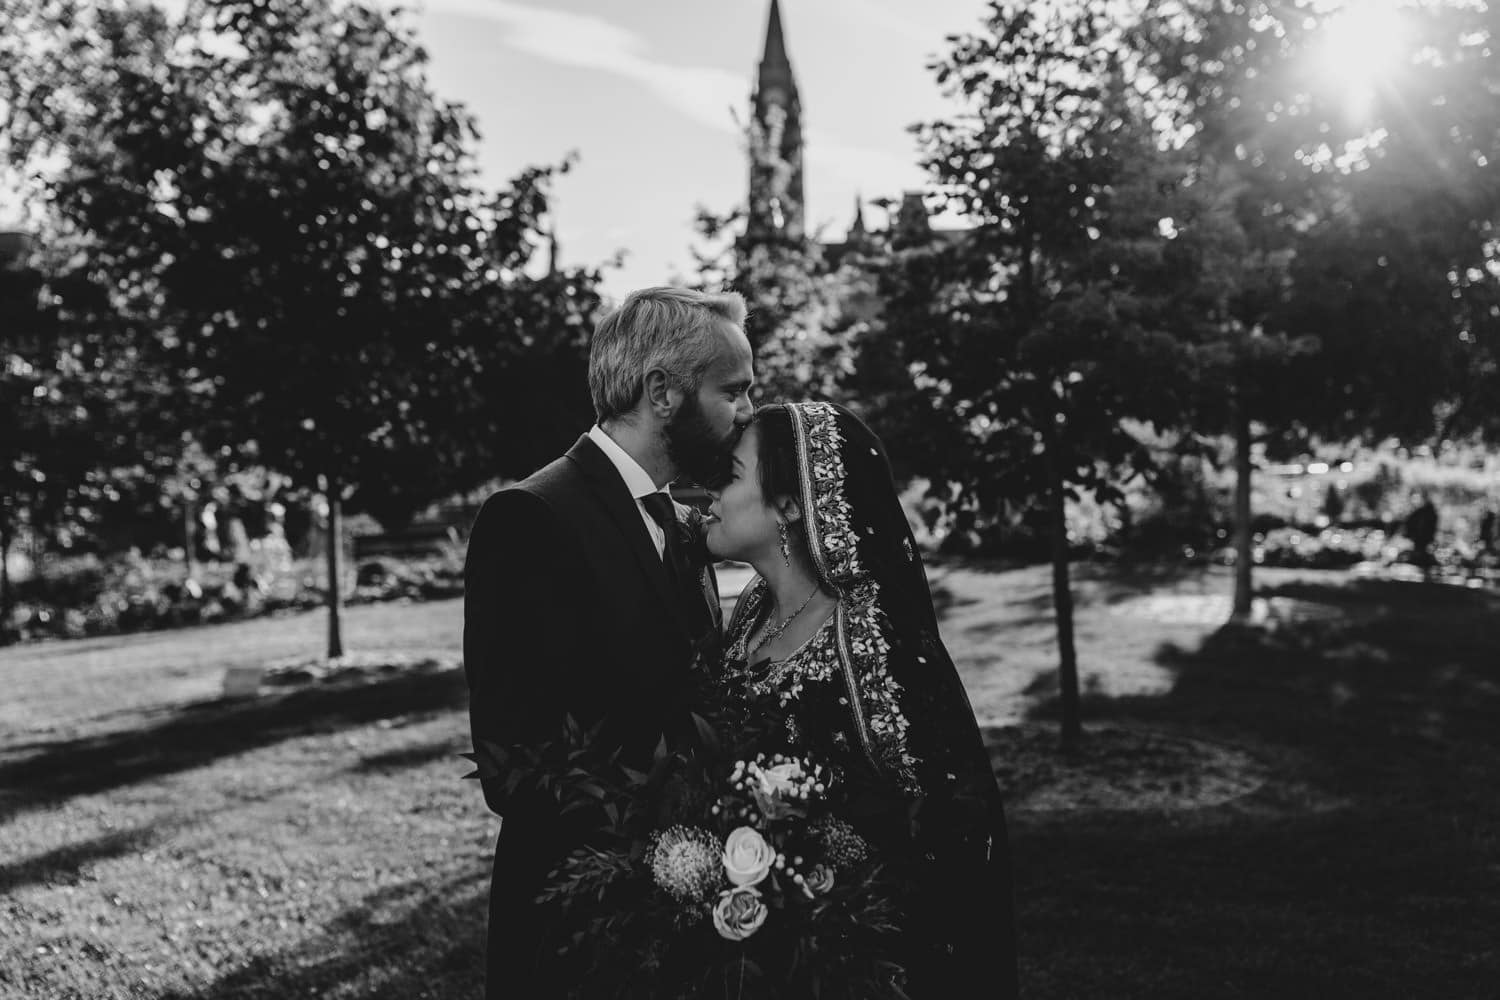 groom kisses bride's forehead - ottawa elopement